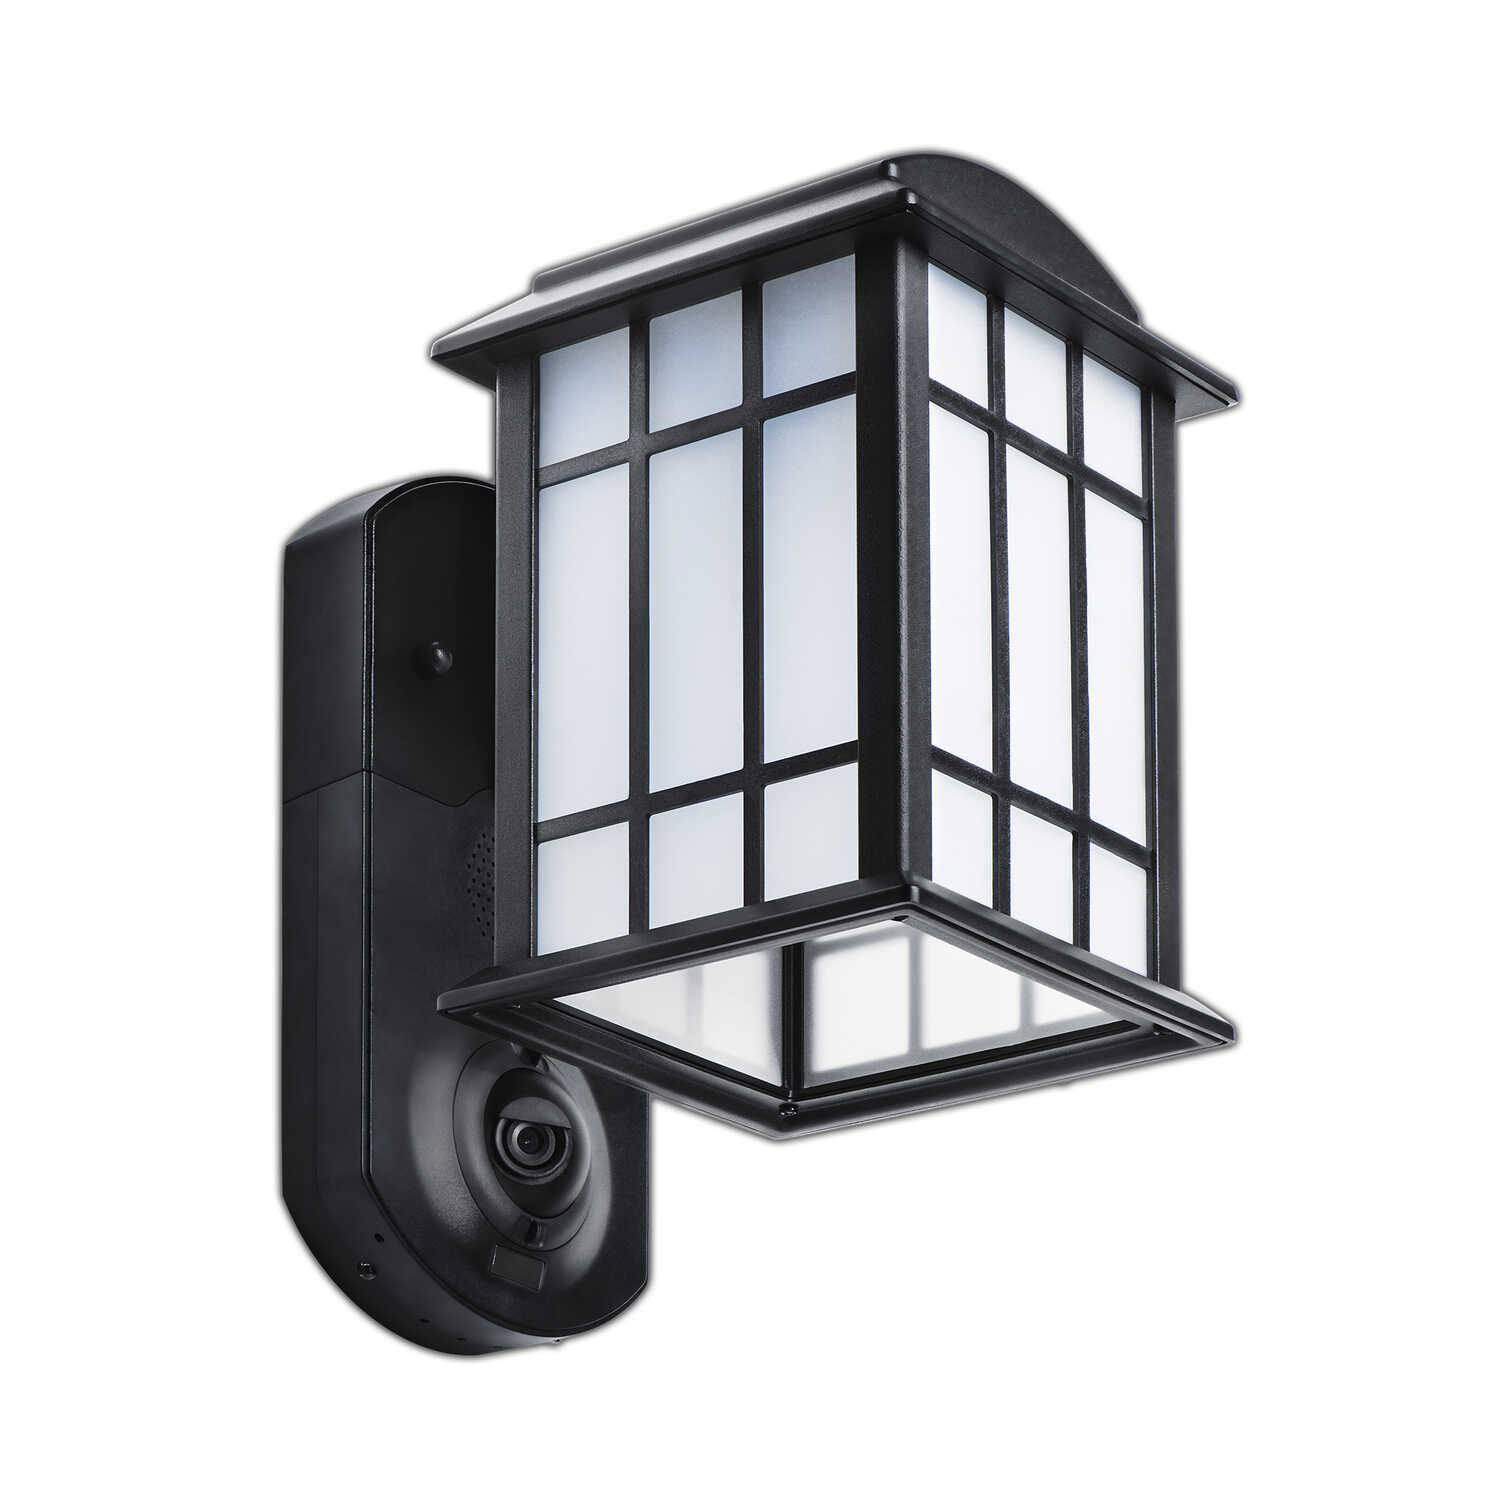 Maximus  Bluetooth-Enabled Motion Sensor  Hardwired  LED  Black  Security Light